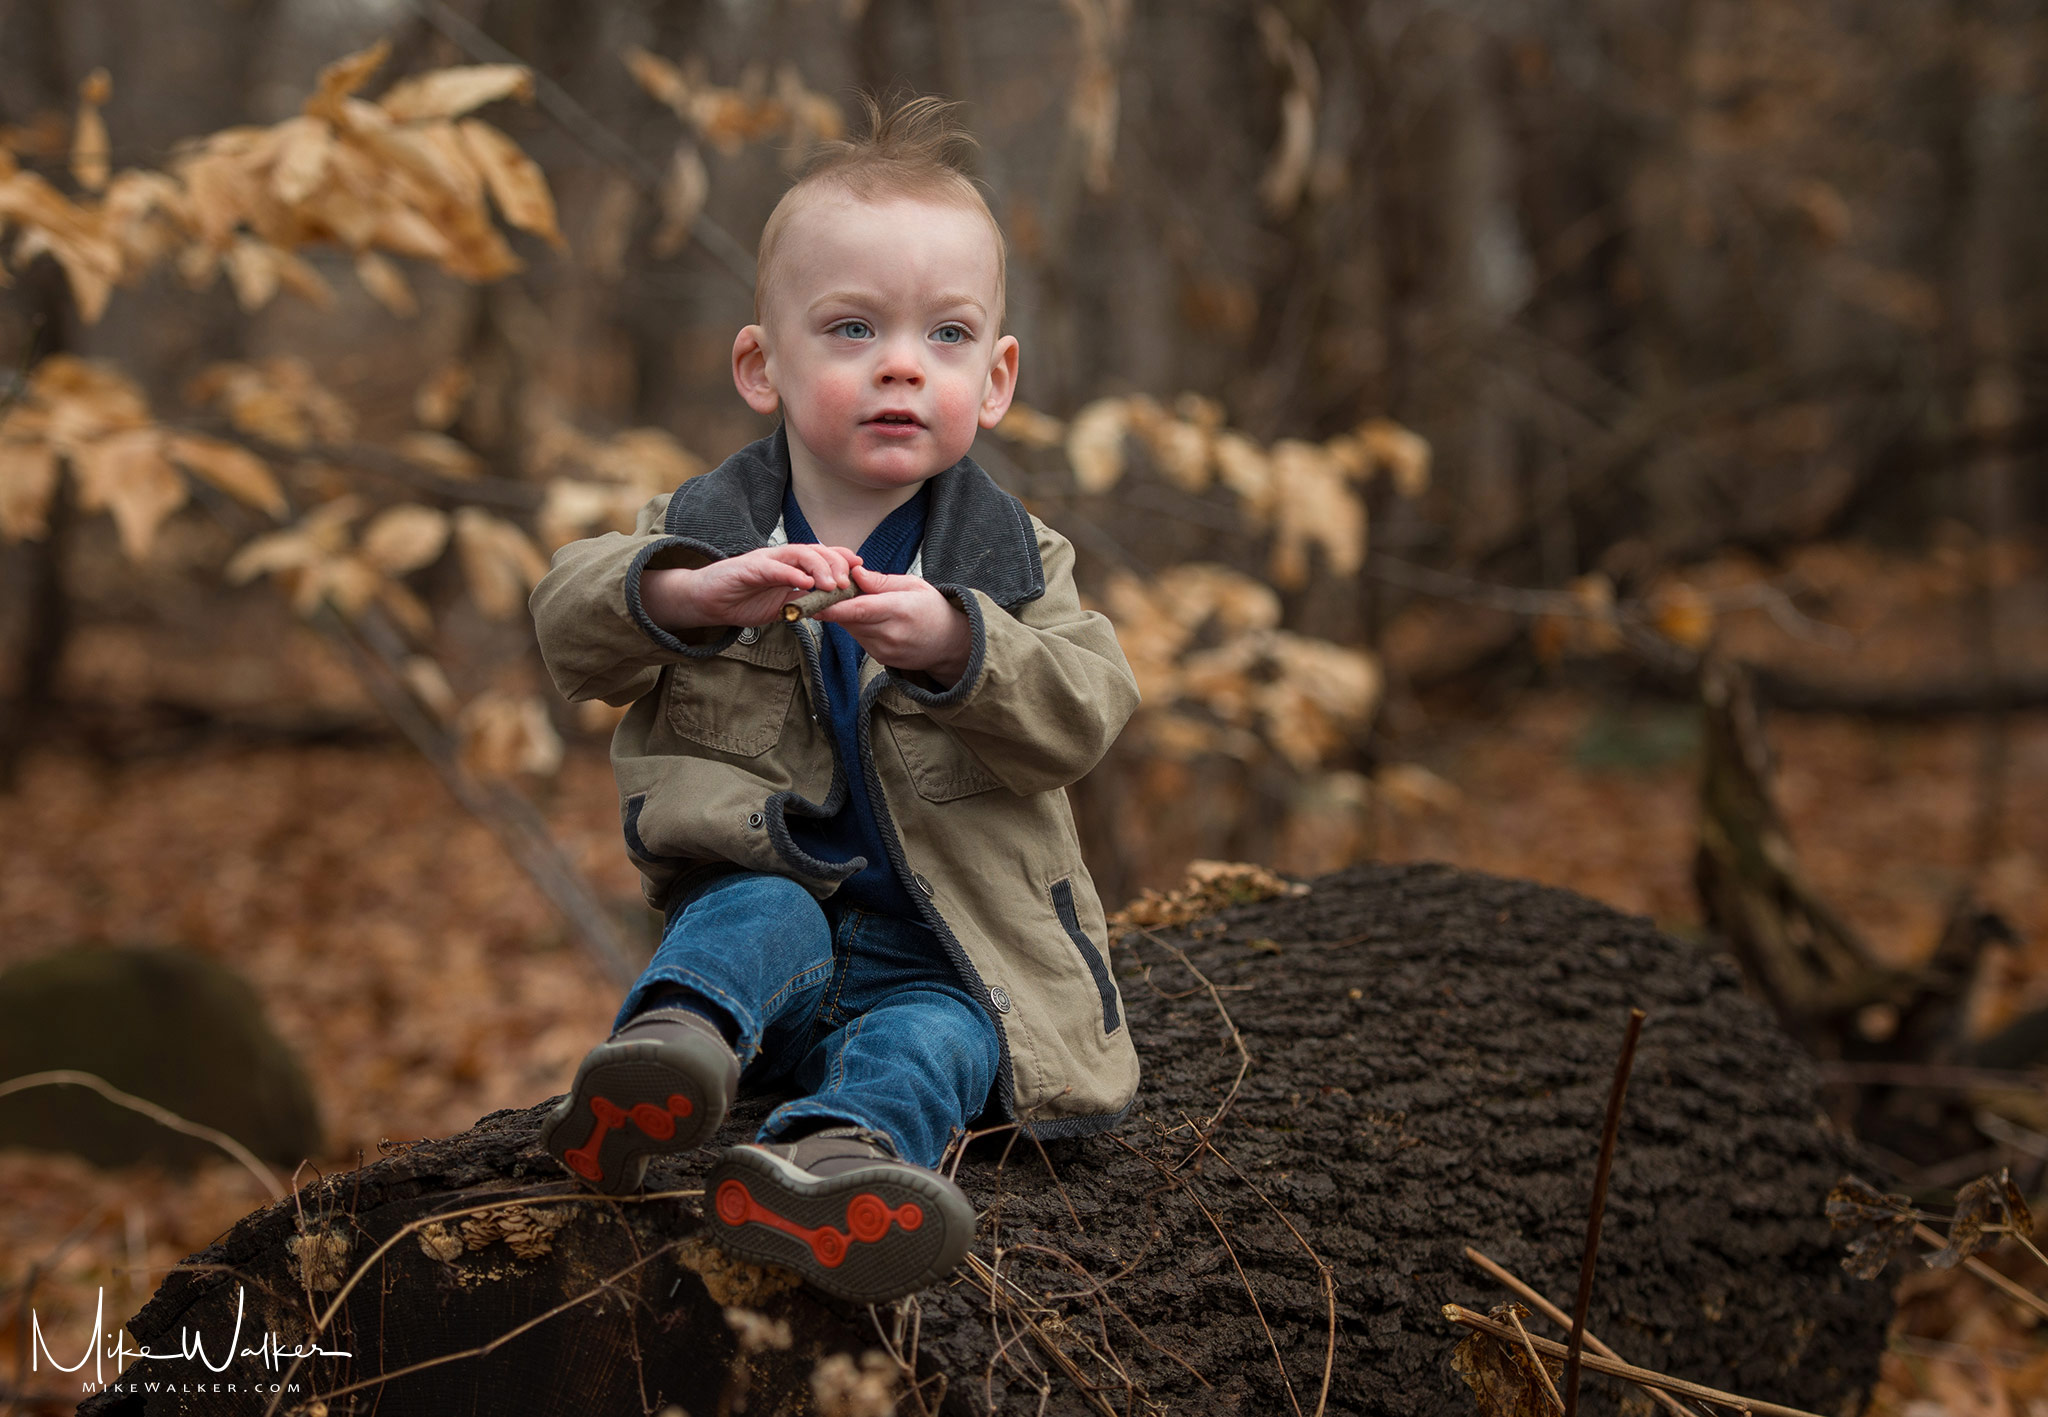 Two-year old playing in the woods. Family photography by Mike Walker.